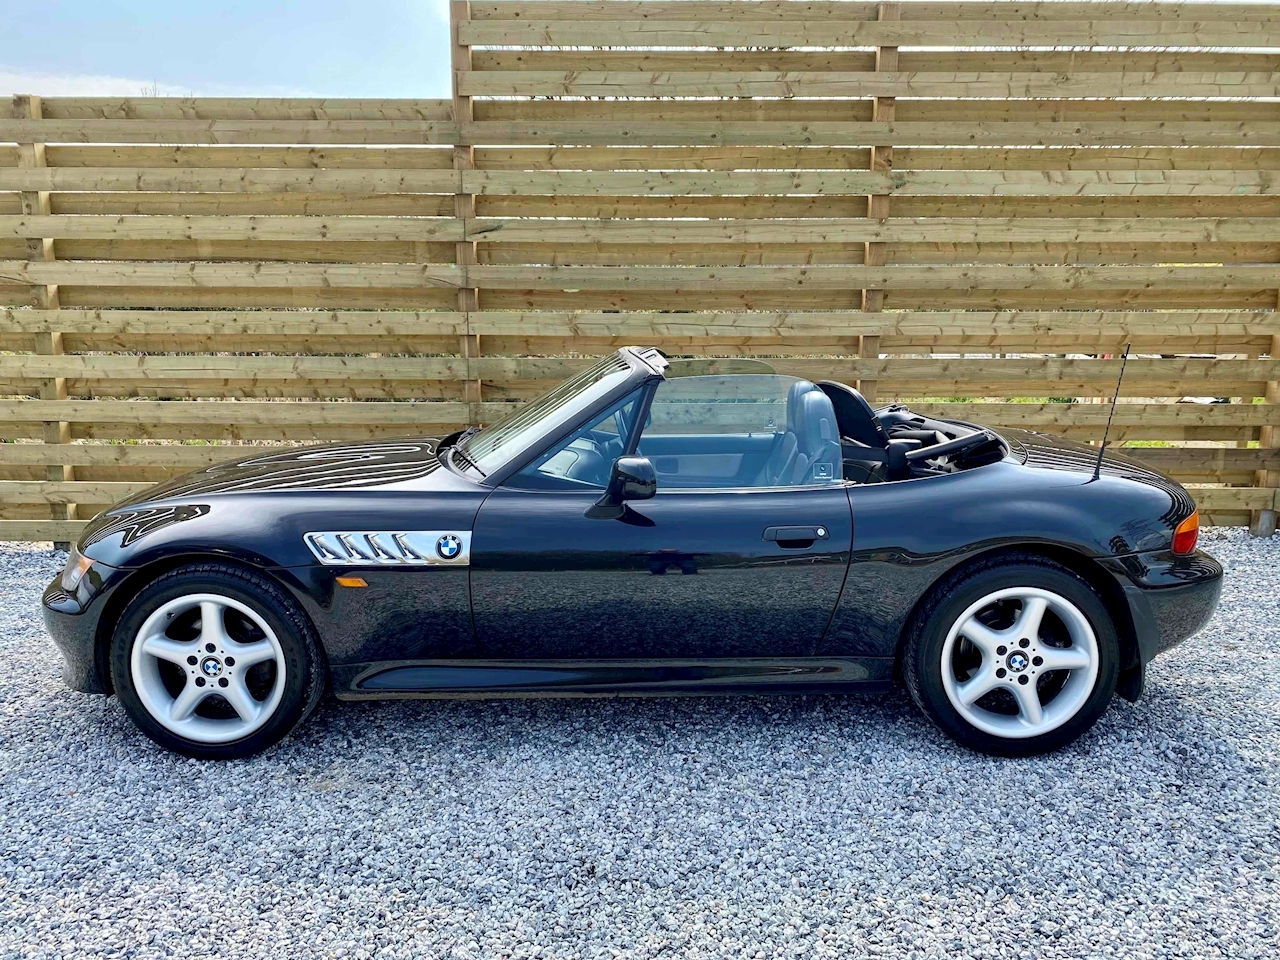 Z3 Only 48,000 Miles - Very Clean Example - Must Be Seen - Recent MOT + Full Inspection Service 1.9 2dr Convertible Manual Petrol